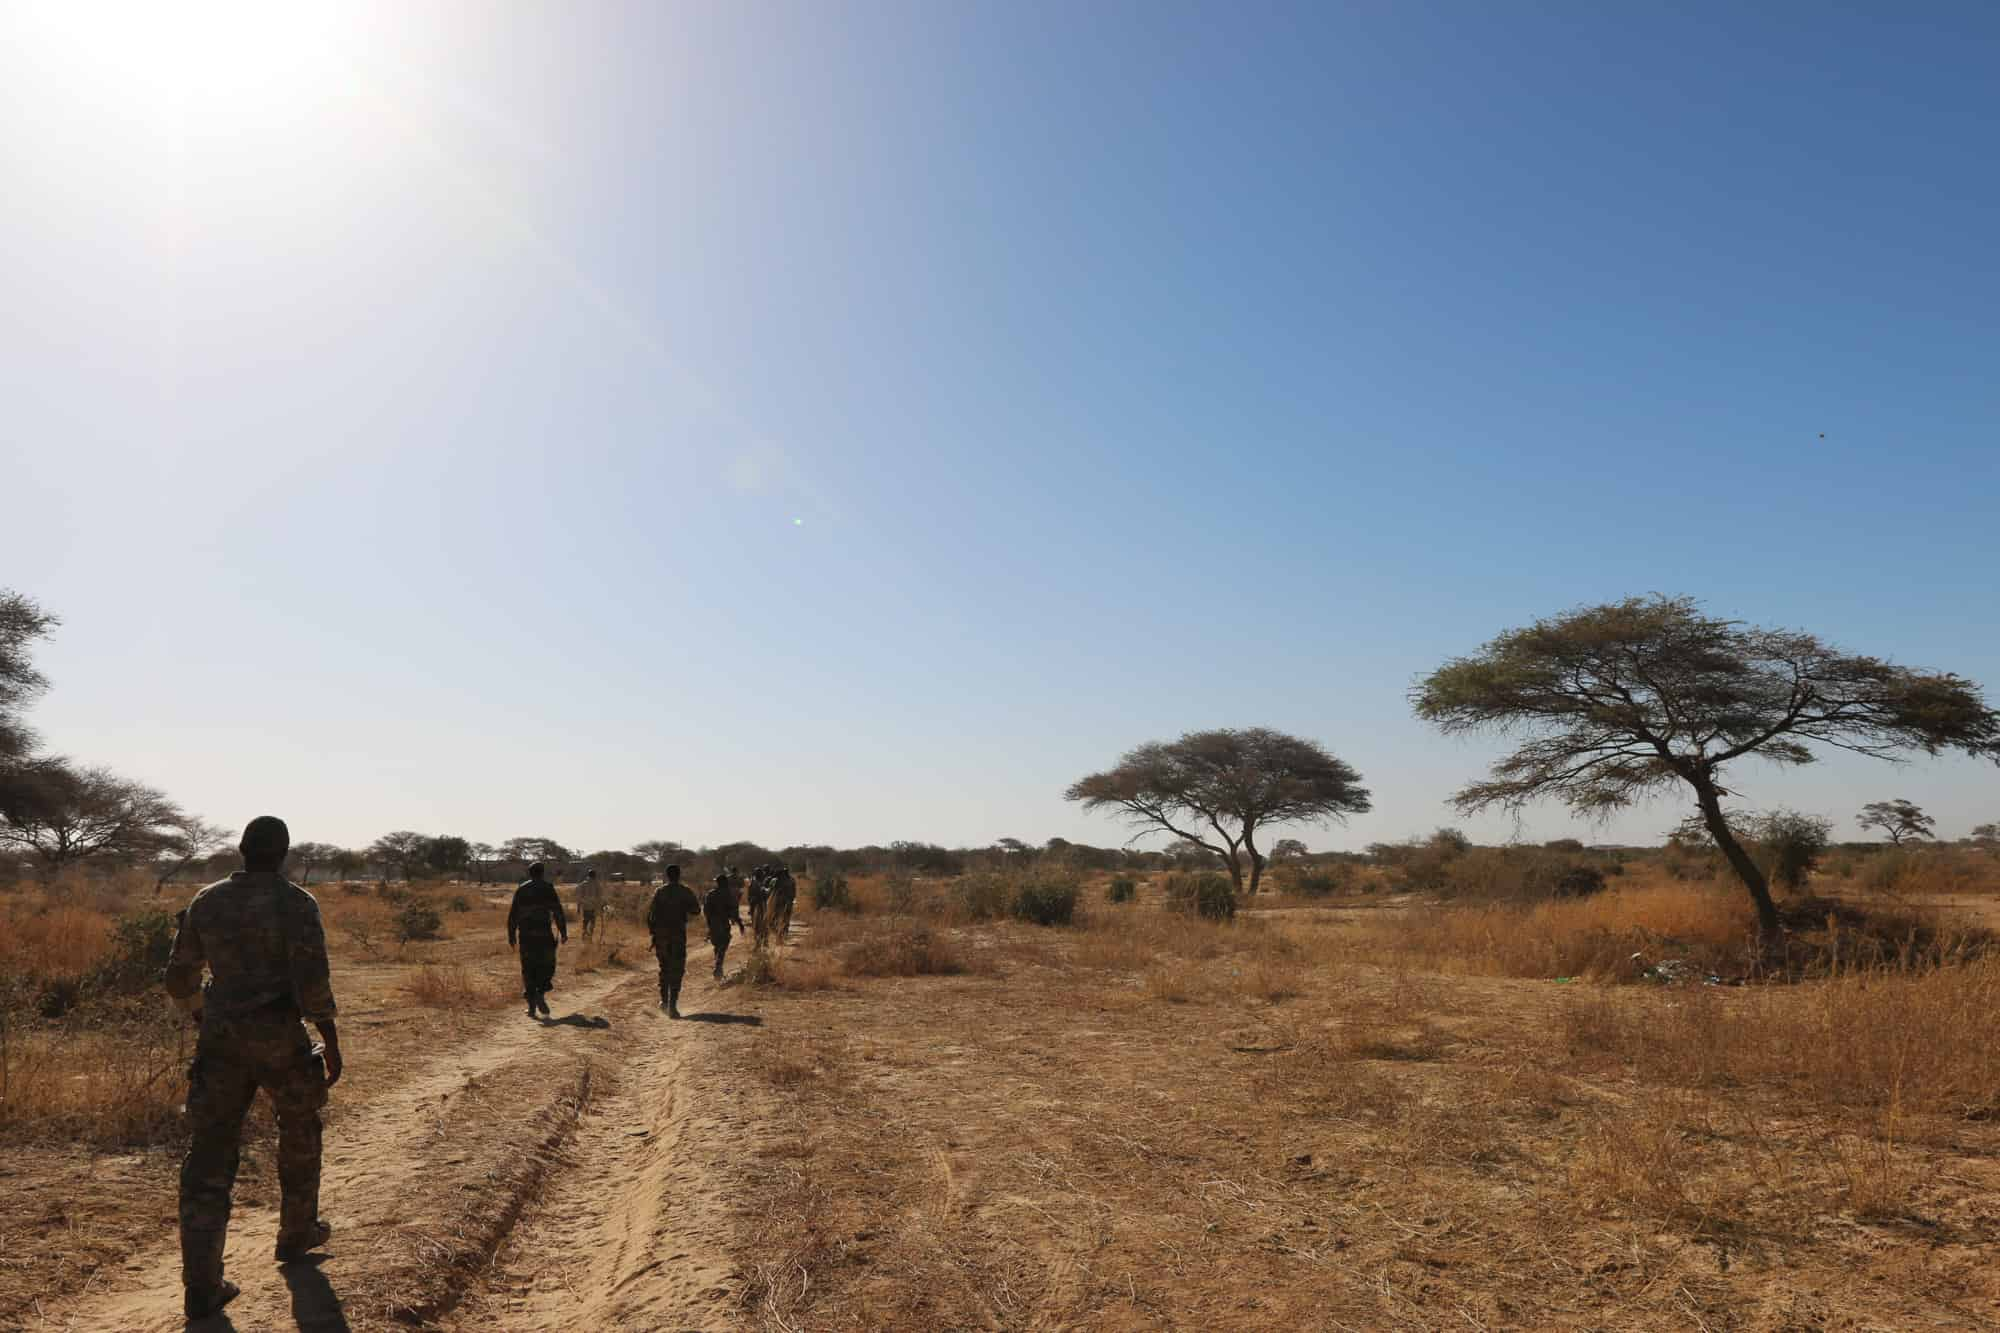 The U S  is waging a massive shadow war in Africa, exclusive